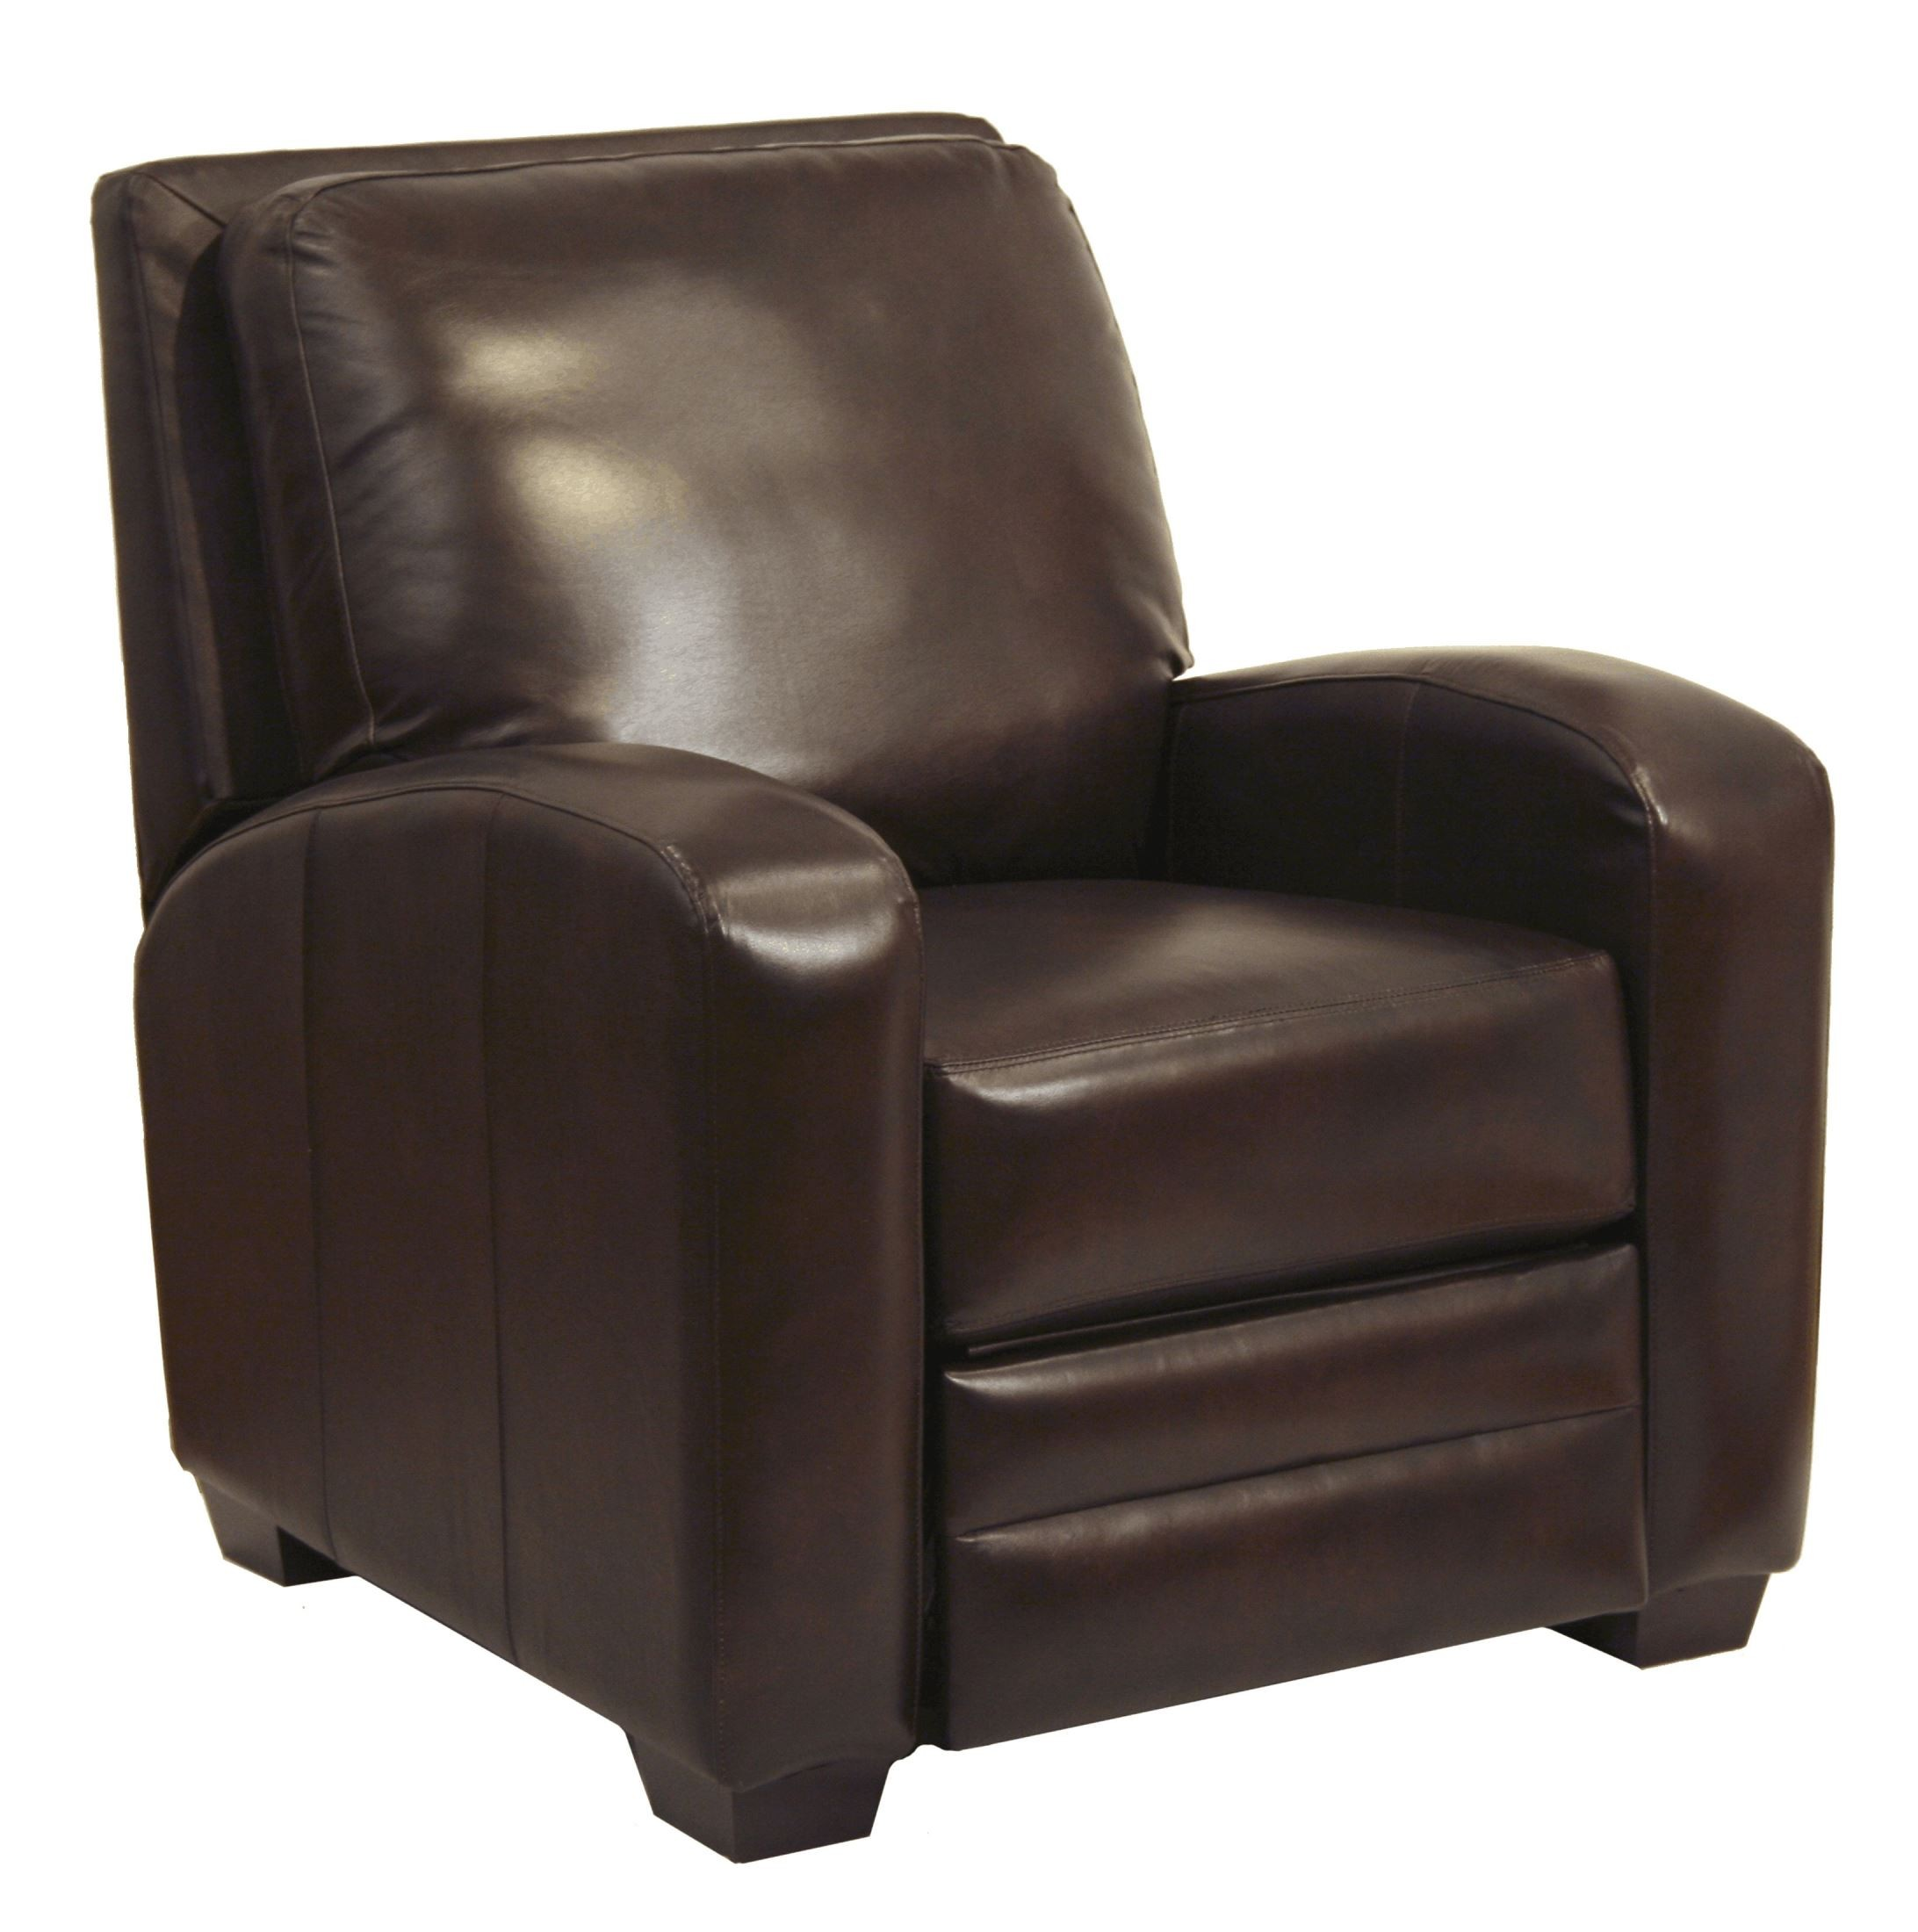 Avanti chocolate leather recliner from catnapper for Catnapper cloud nine chaise recliner